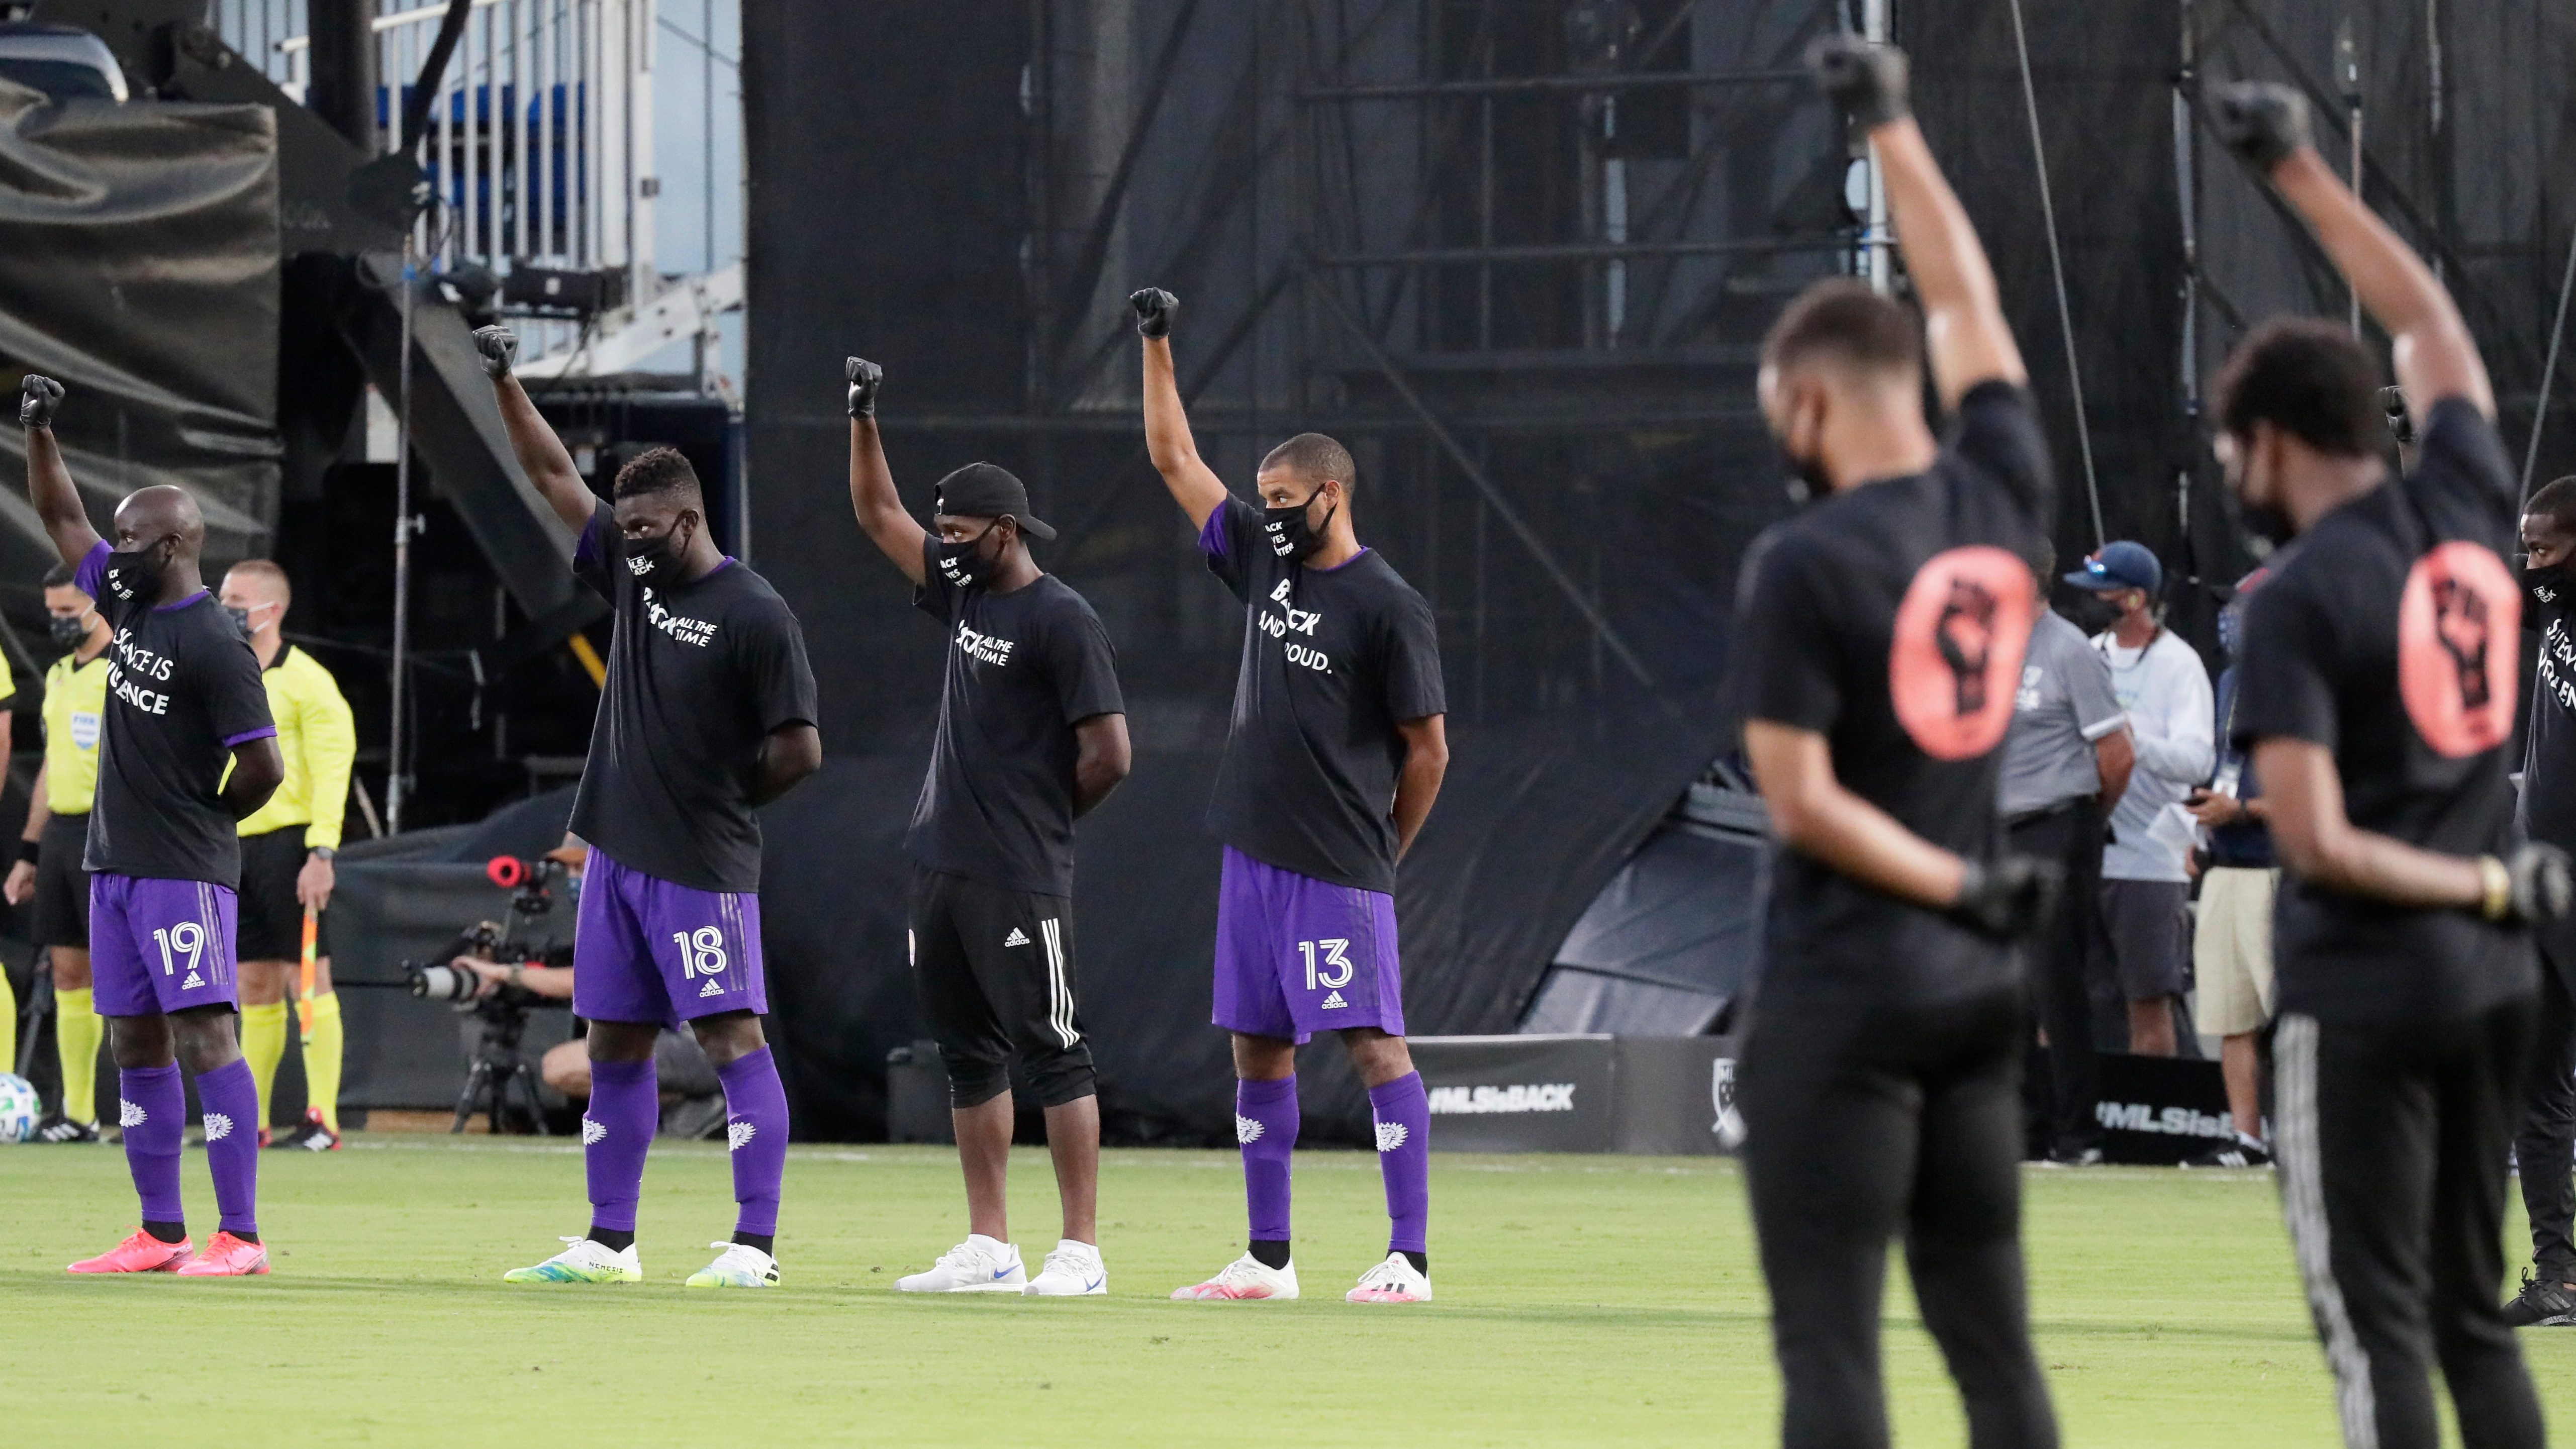 Major League Soccer Returns With Stirring Silent Protest Of Racial Injustice